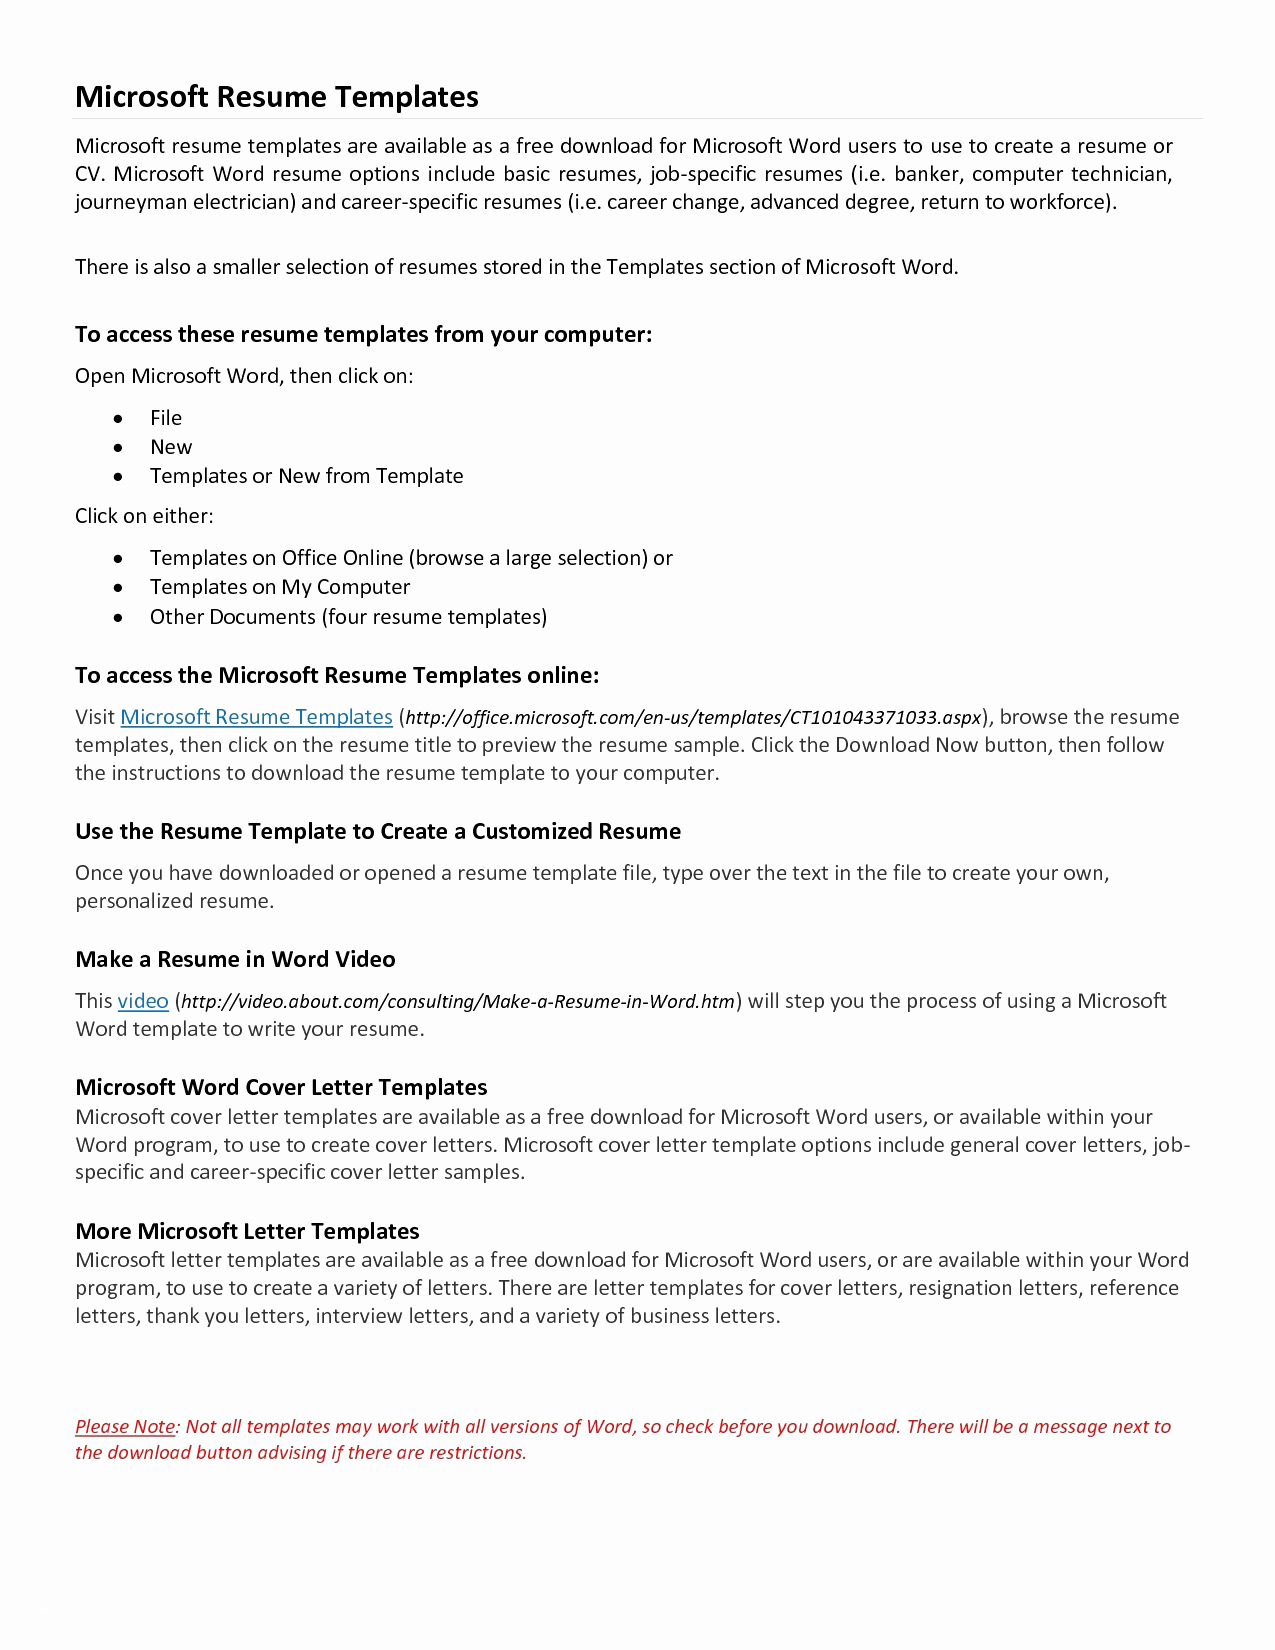 Job Reference Letter Template - Awesome Re Mendation Letter Template for Job